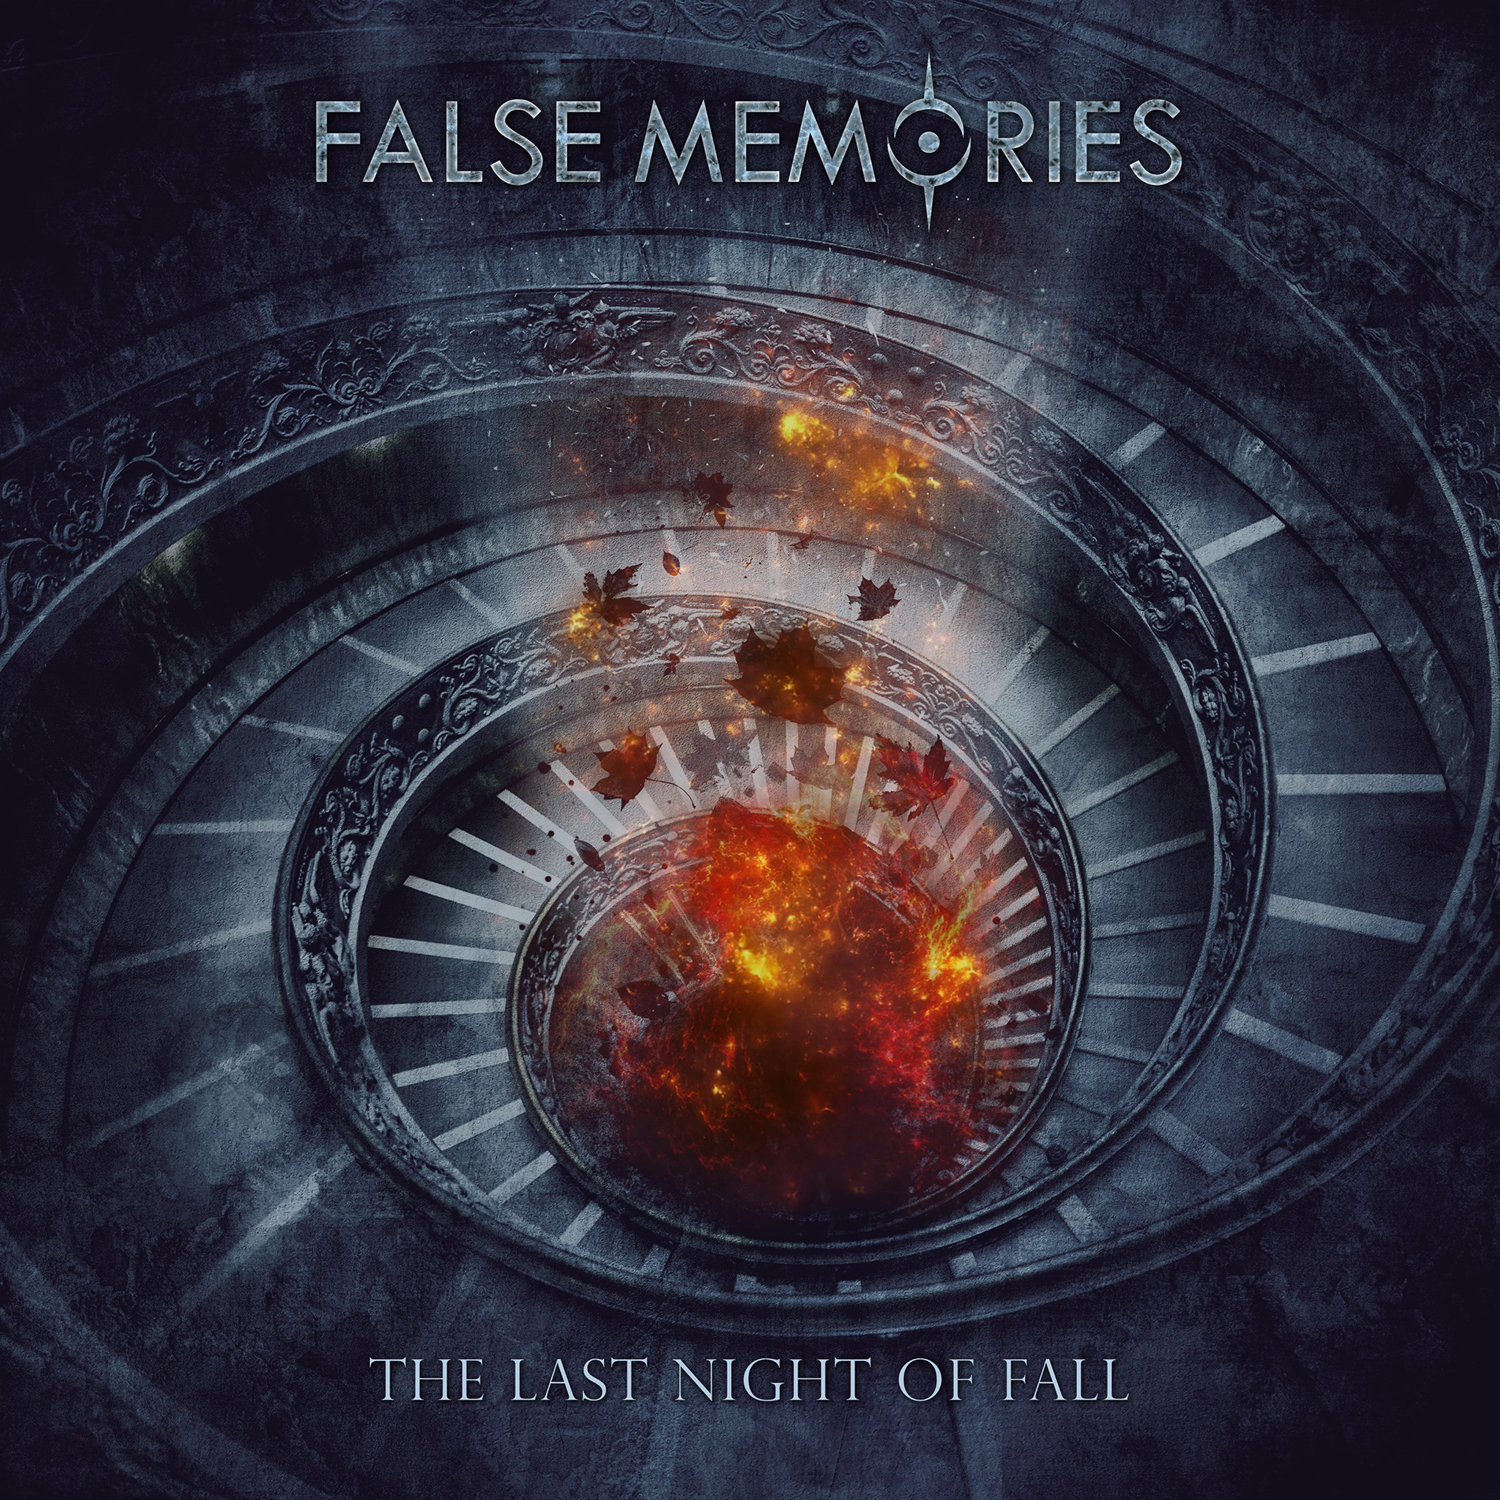 FALSE MEMORIES - album